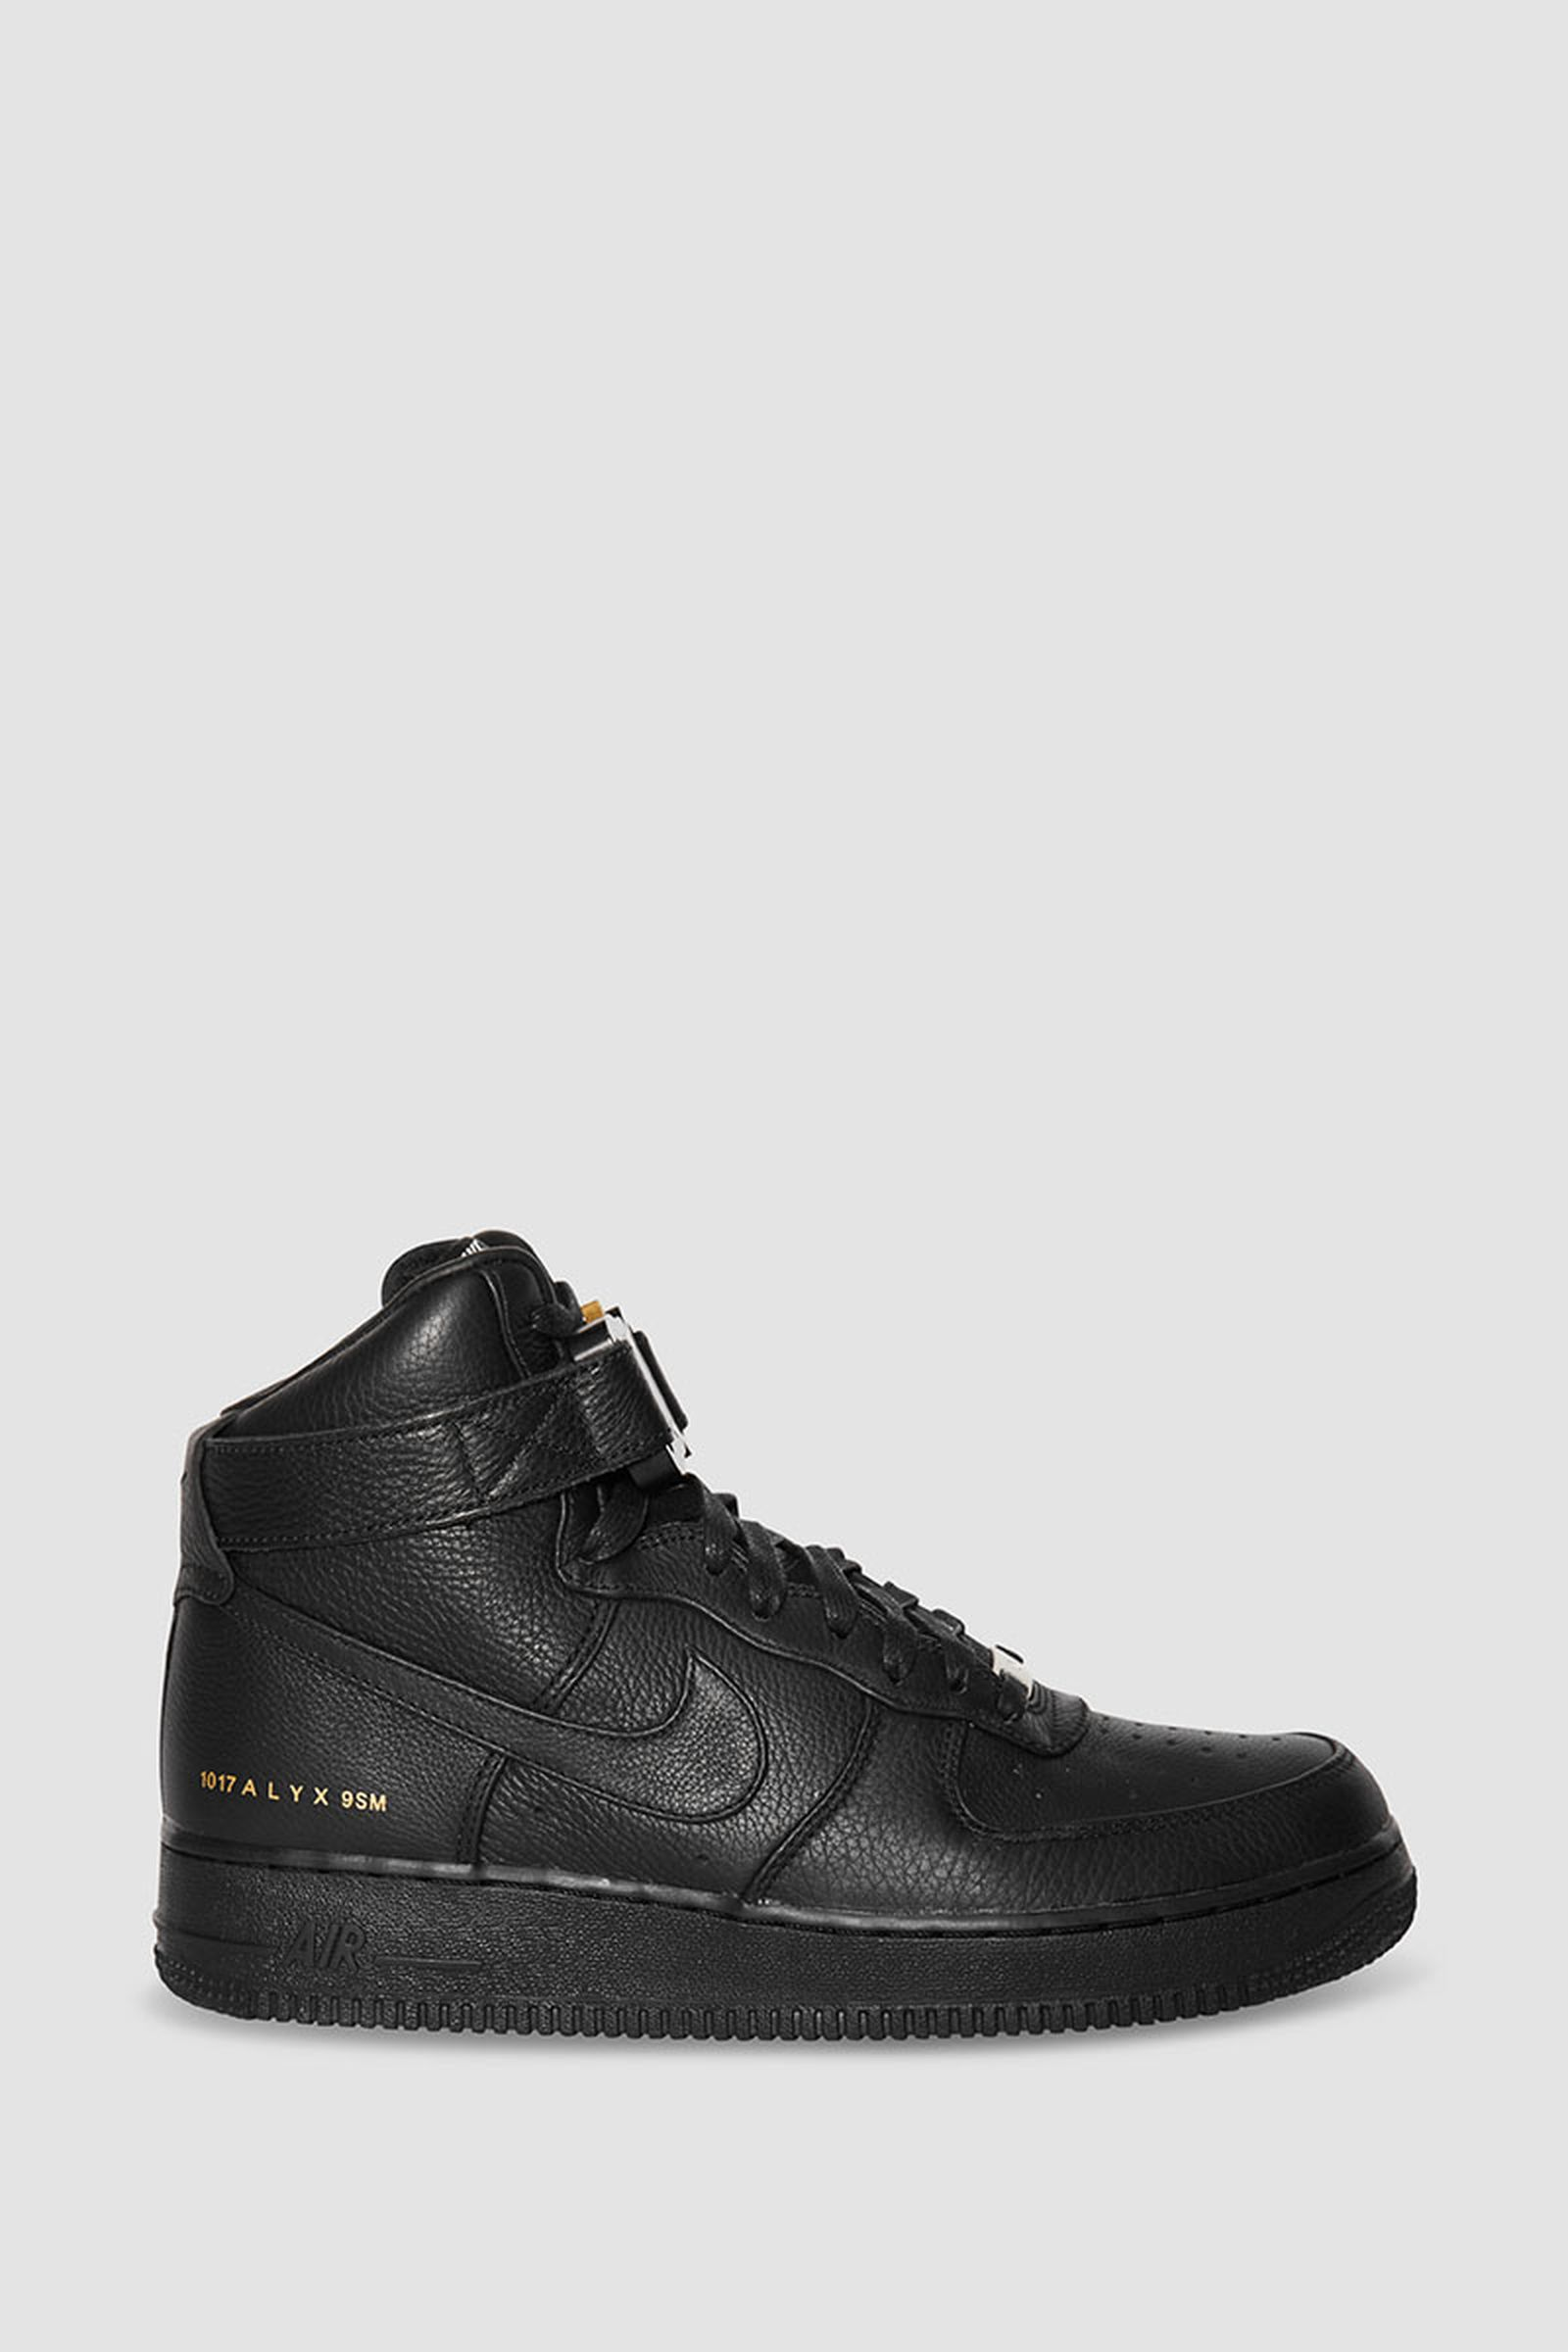 alyx-nike-air-force-1-high-release-date-price-14